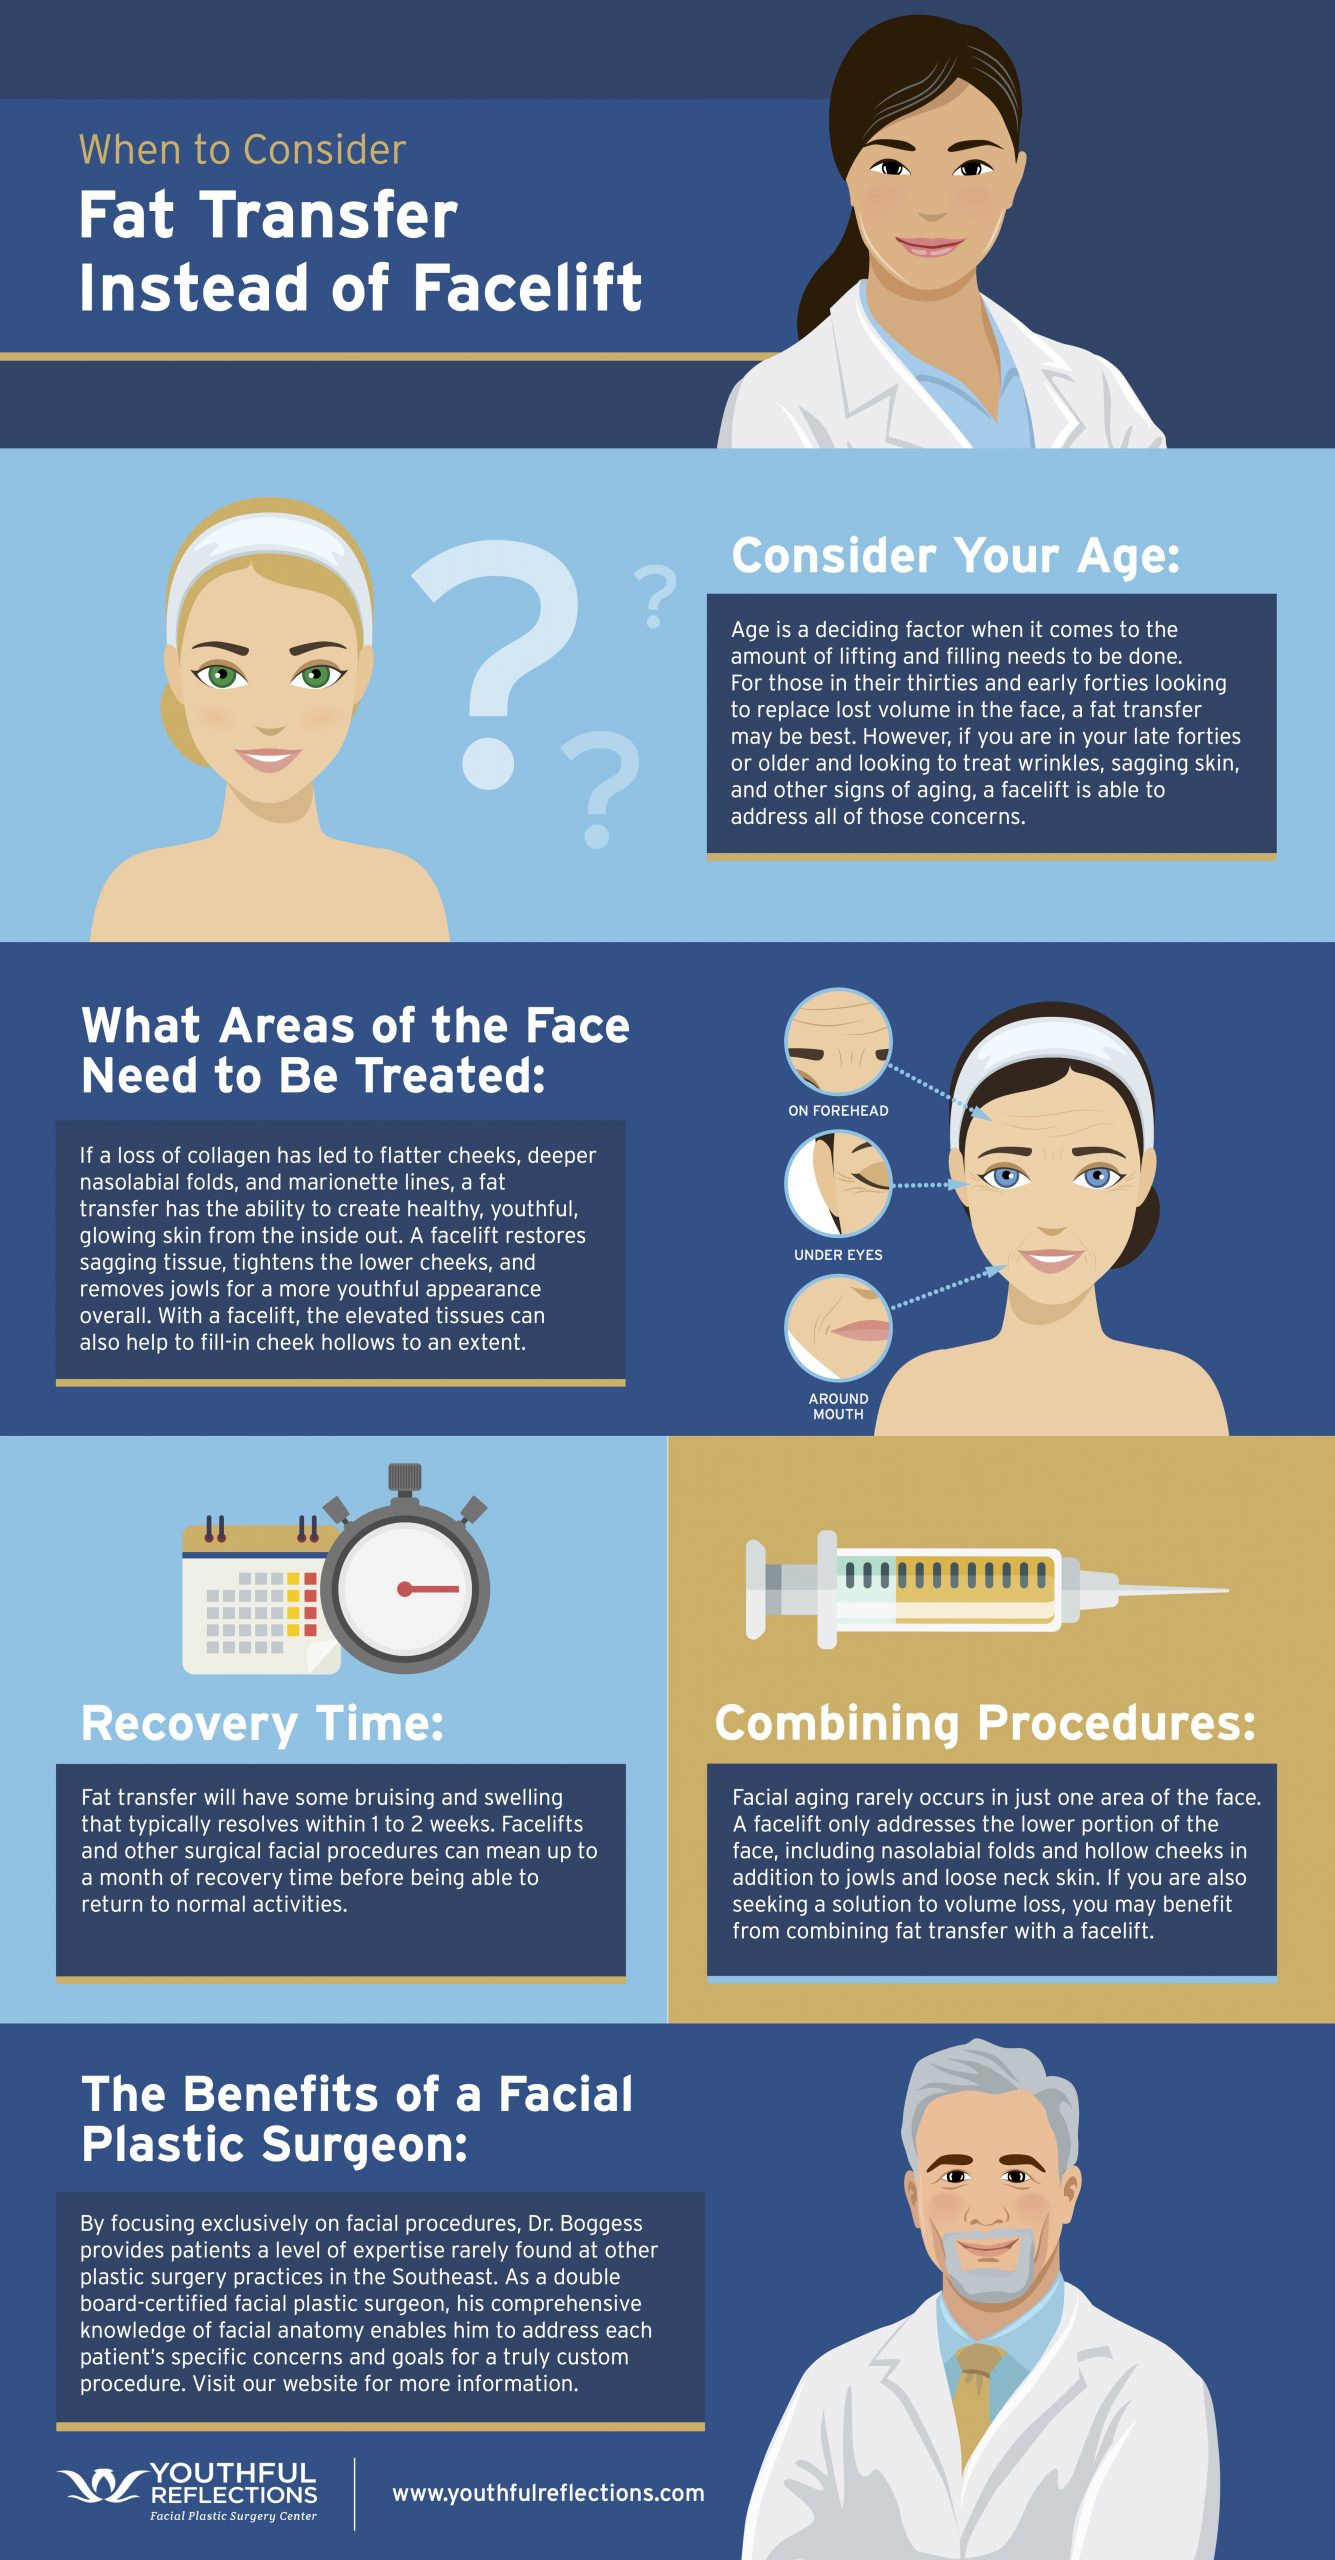 When to consider fat transfer instead of facelift infographic